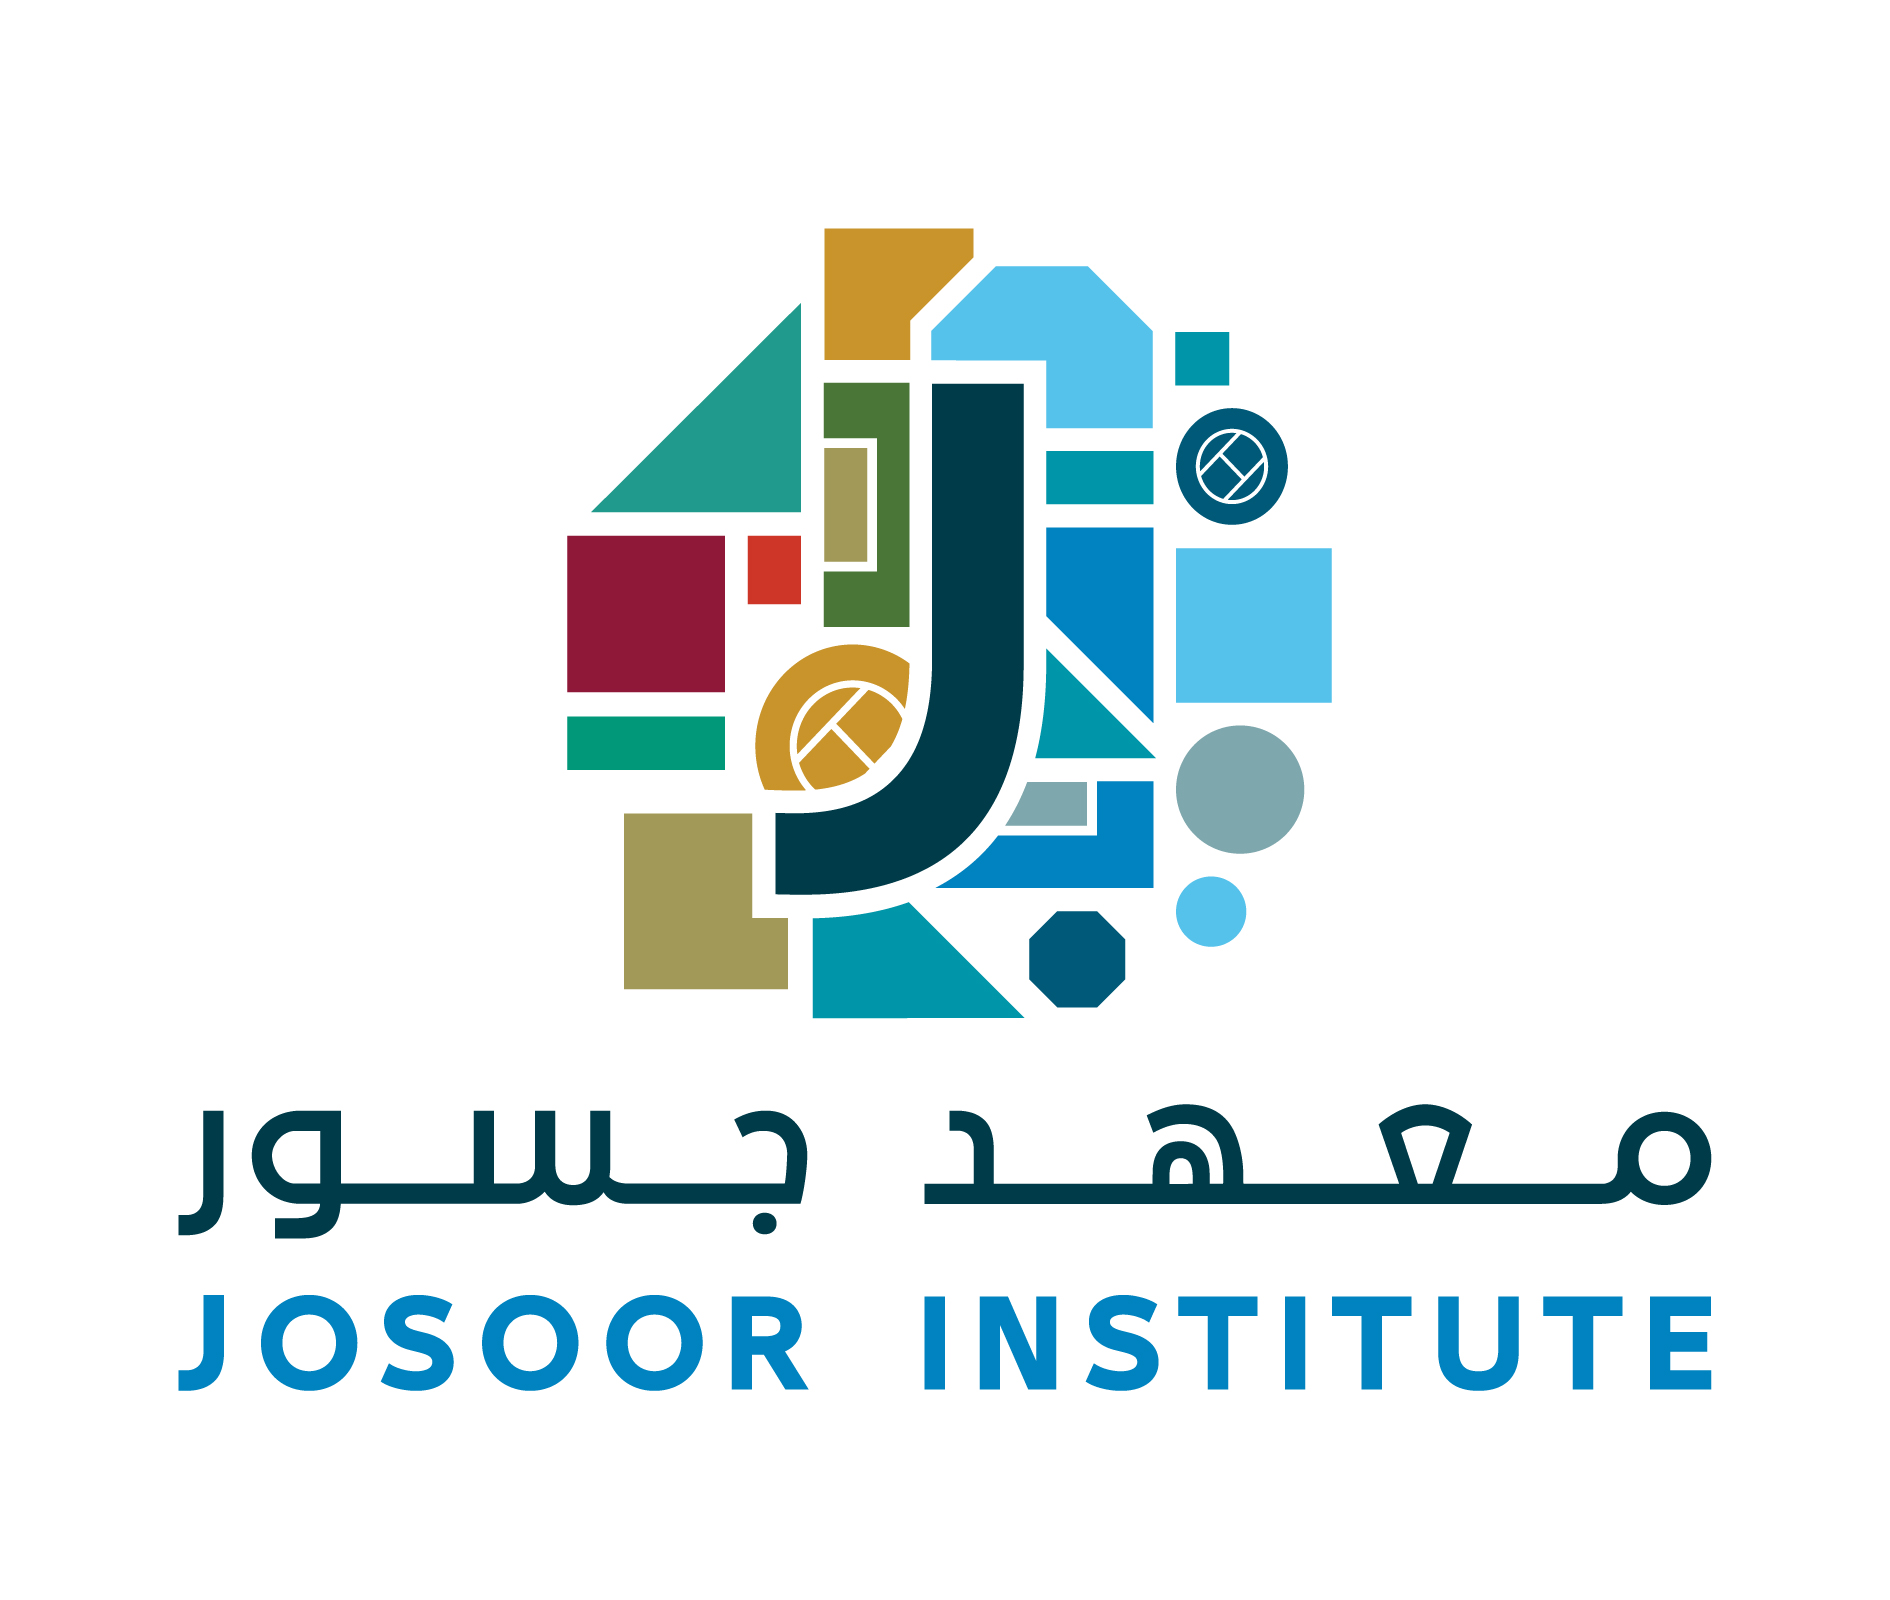 Josoor Institute